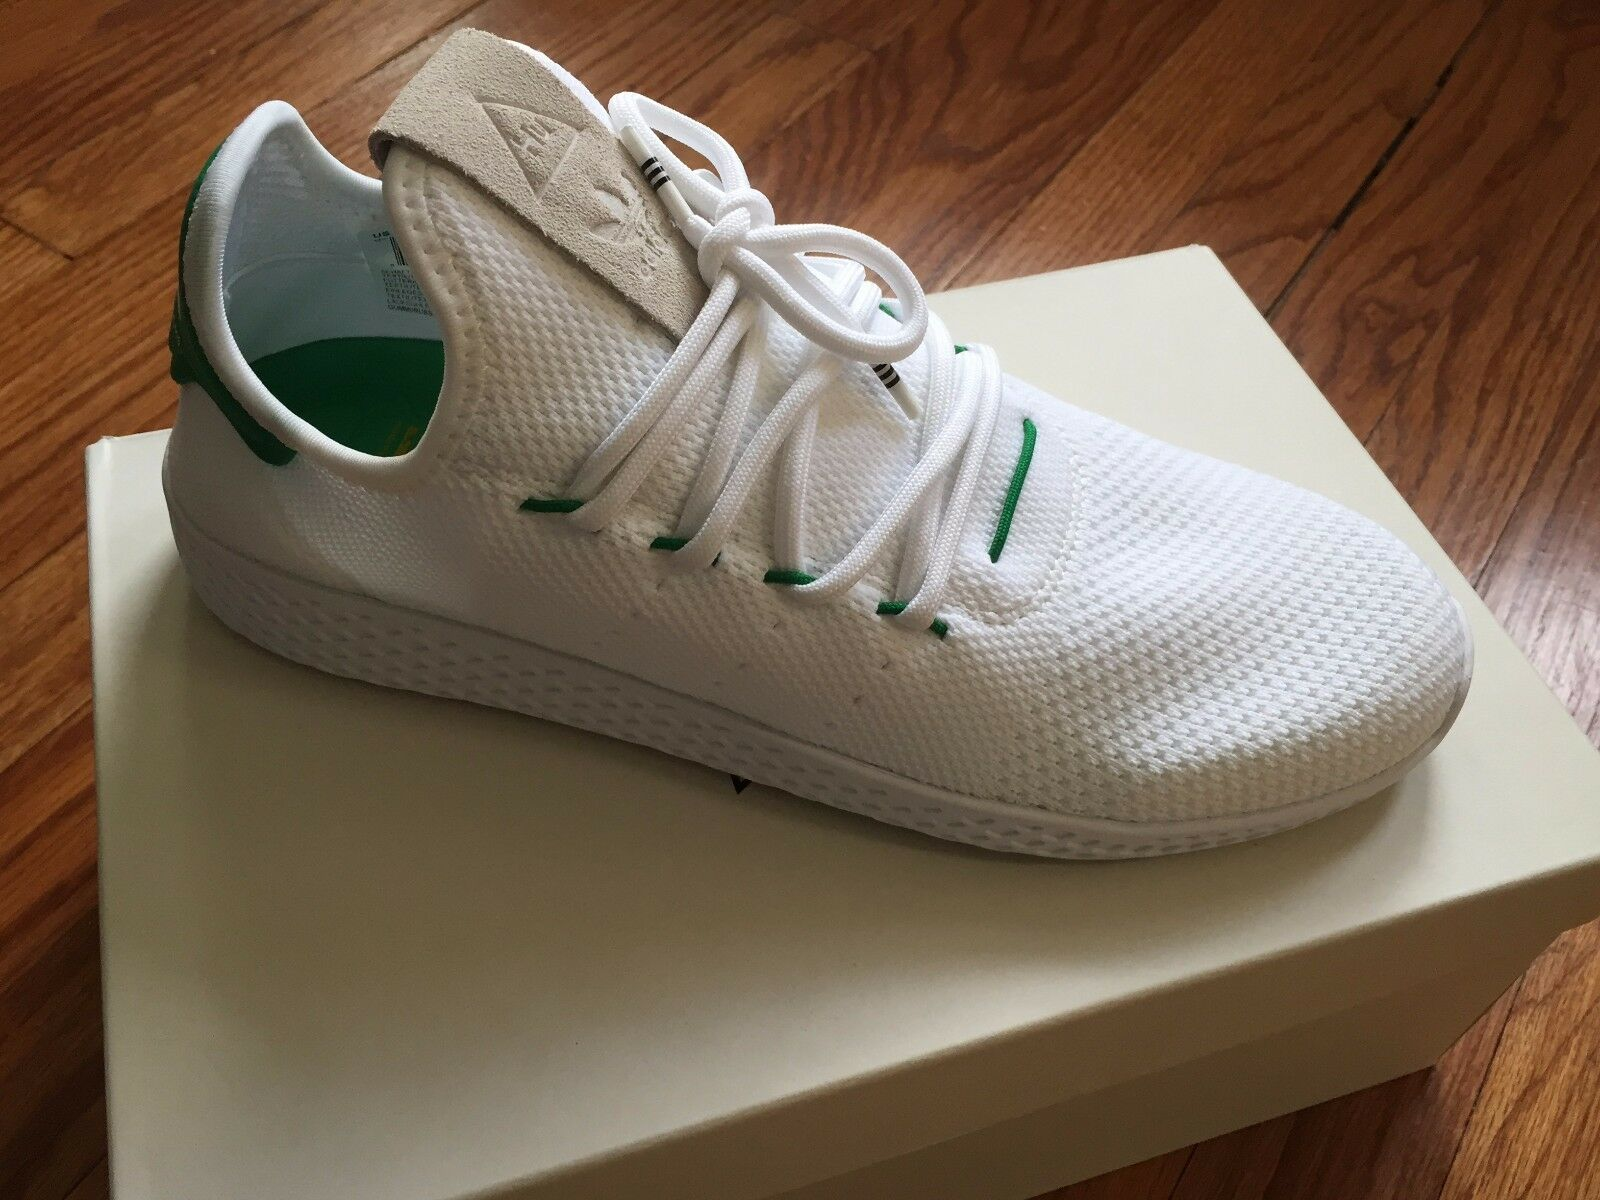 ADIDAS PW GREEN PHARRELL WILLIAMS HU TENNIS GREEN PW 100% AUTHENTIC DS Size 9 6e5618